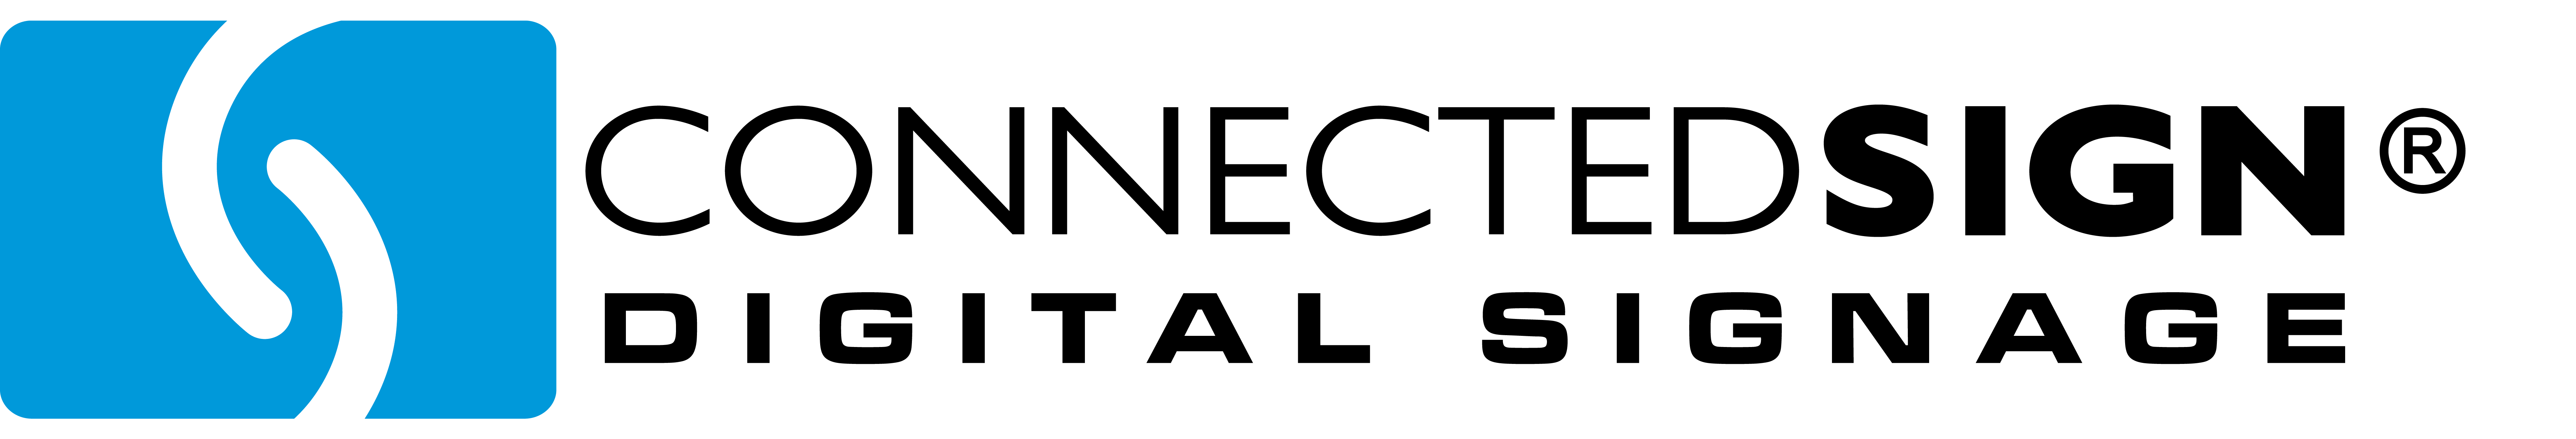 Connected sign logo.png